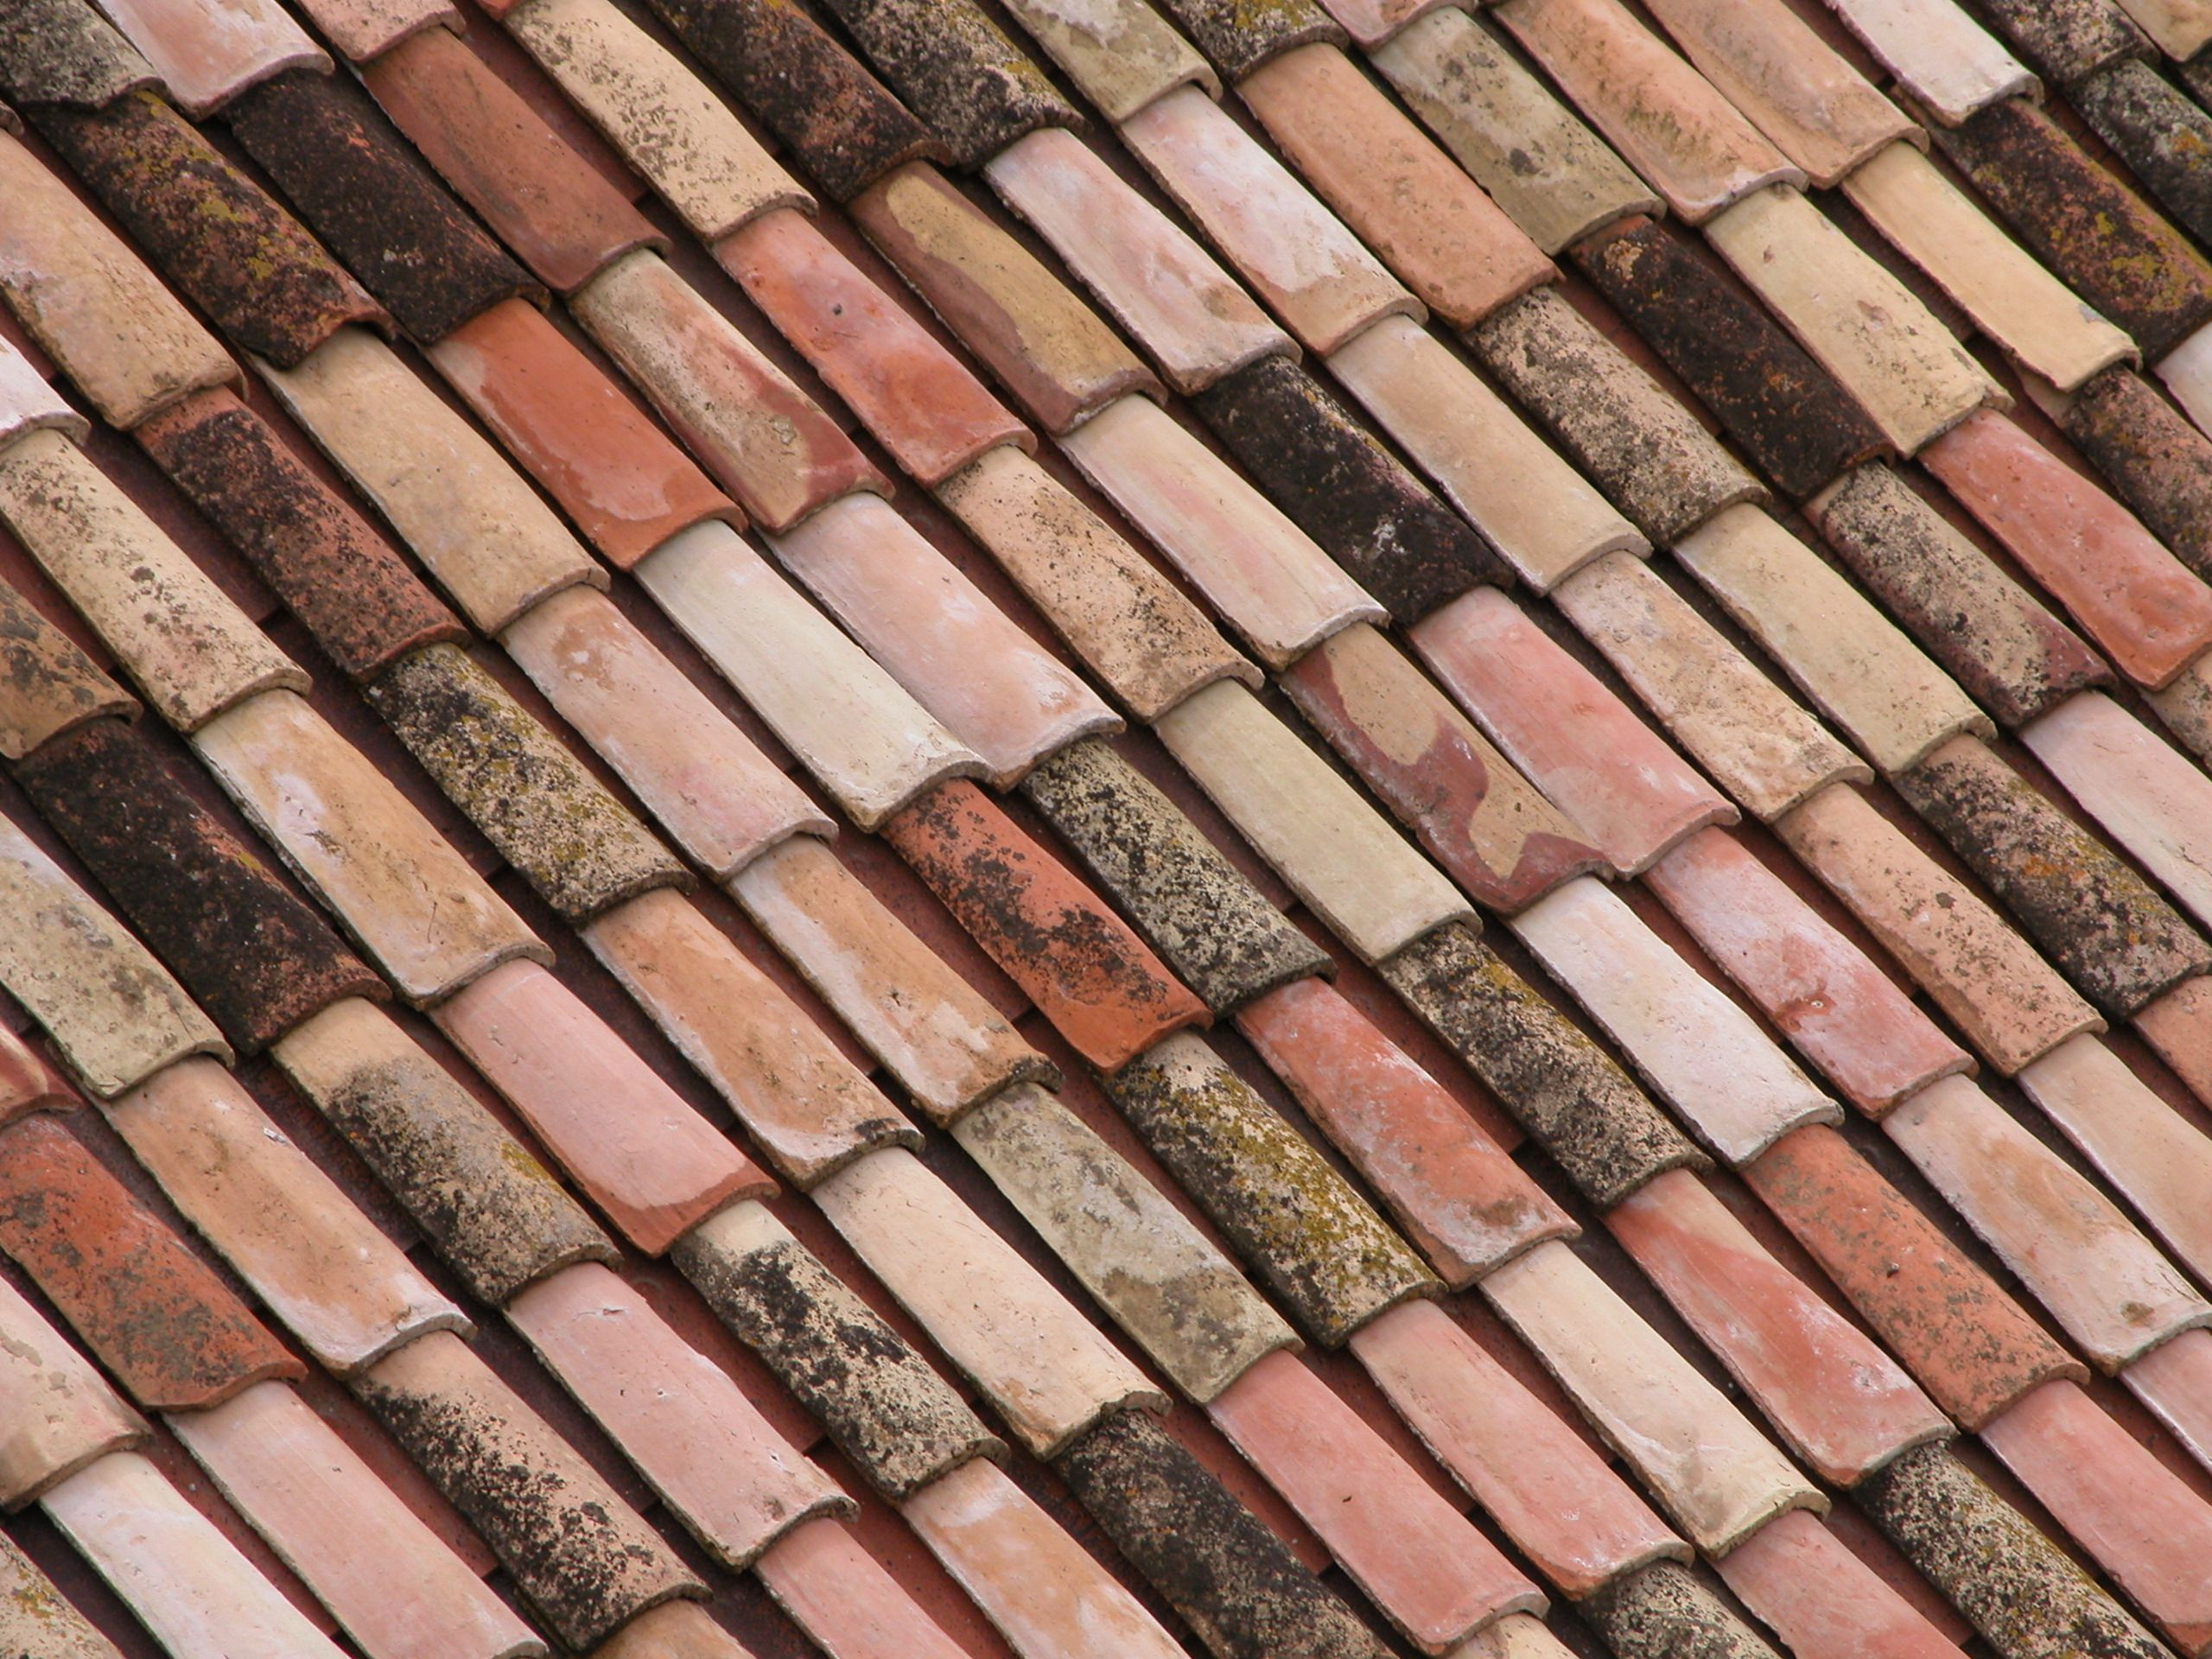 we talk about terracotta roofing tiles http://www.roofing-tiles